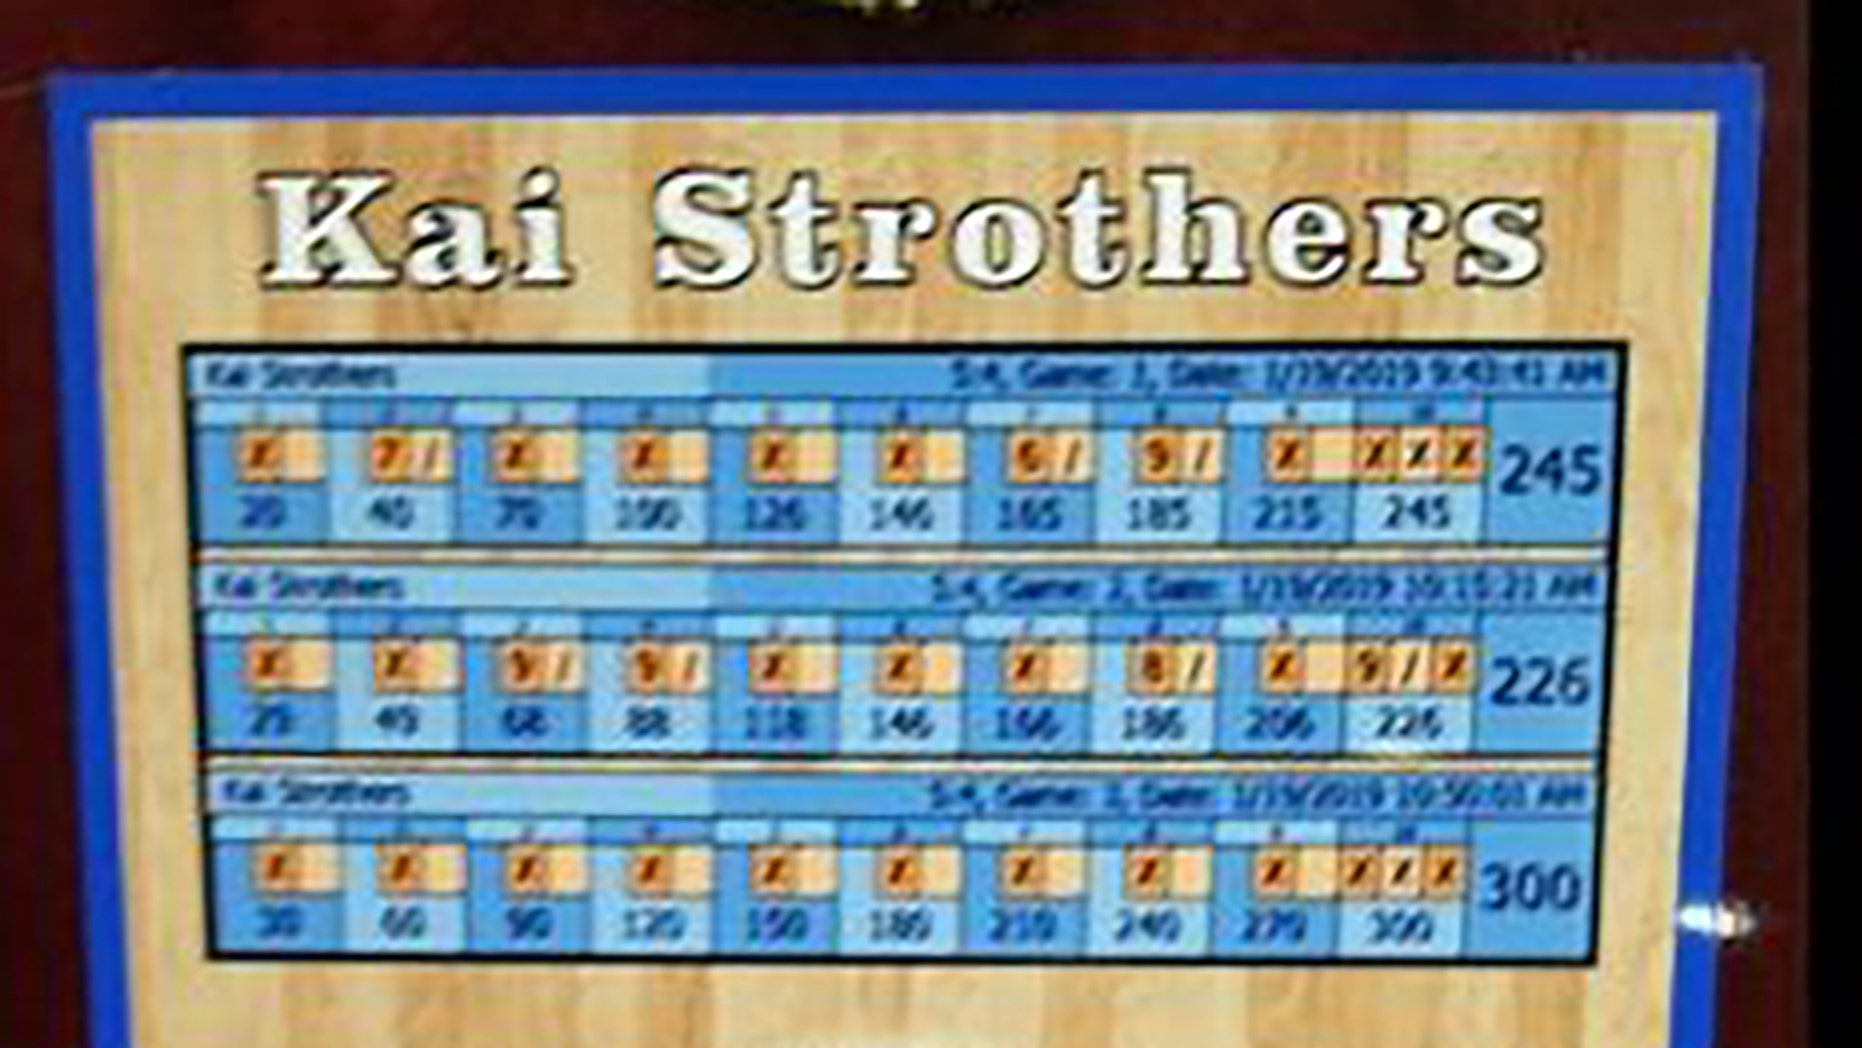 A scorecard shows the perfect 300 game that Kai Strothers, 10, recently rolled in New Jersey. (Facebook)